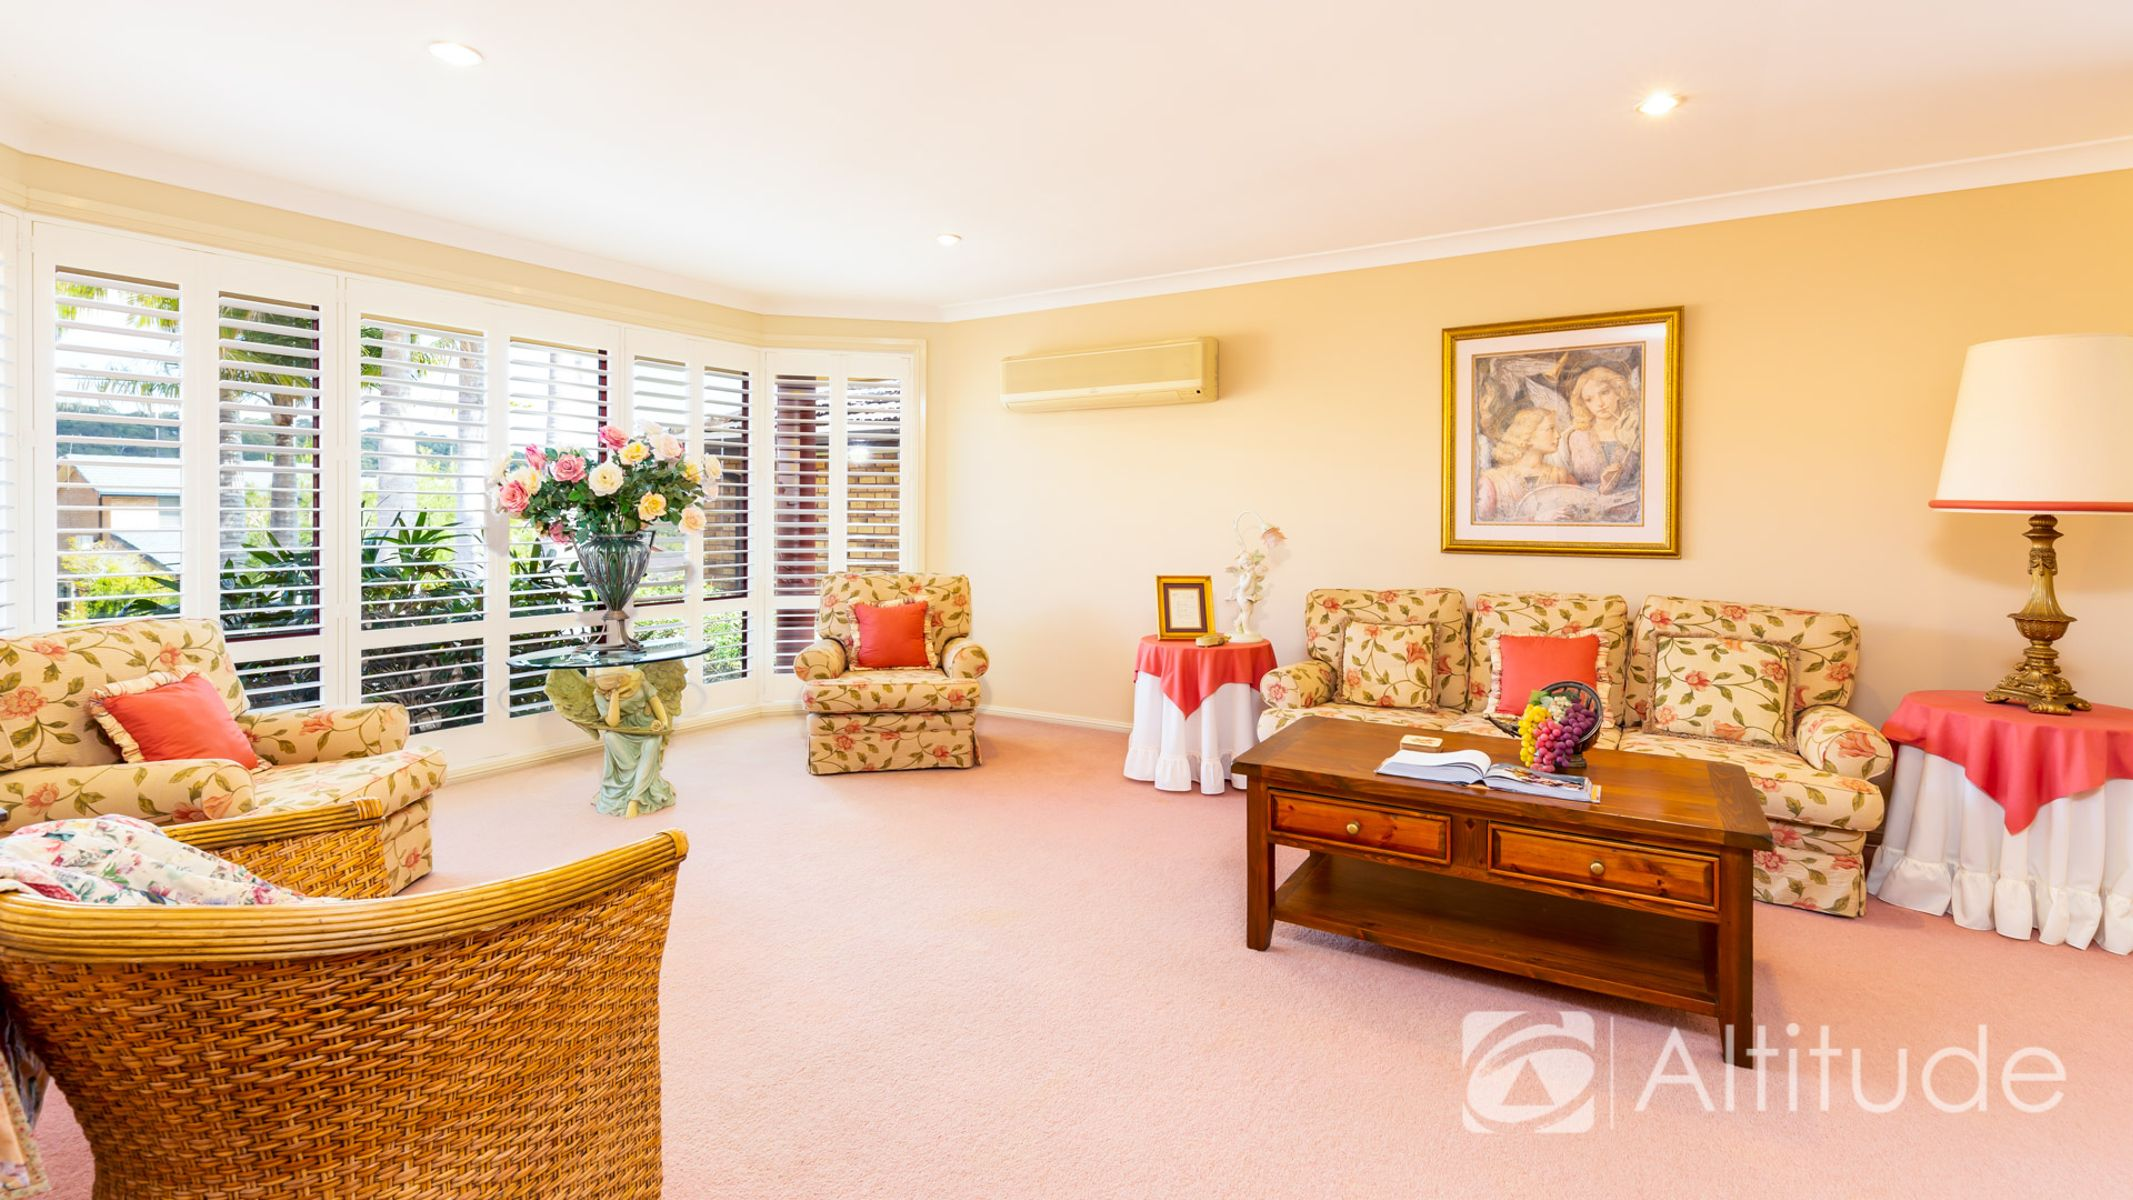 84 Glad Gunson Drive, Eleebana NSW 2282